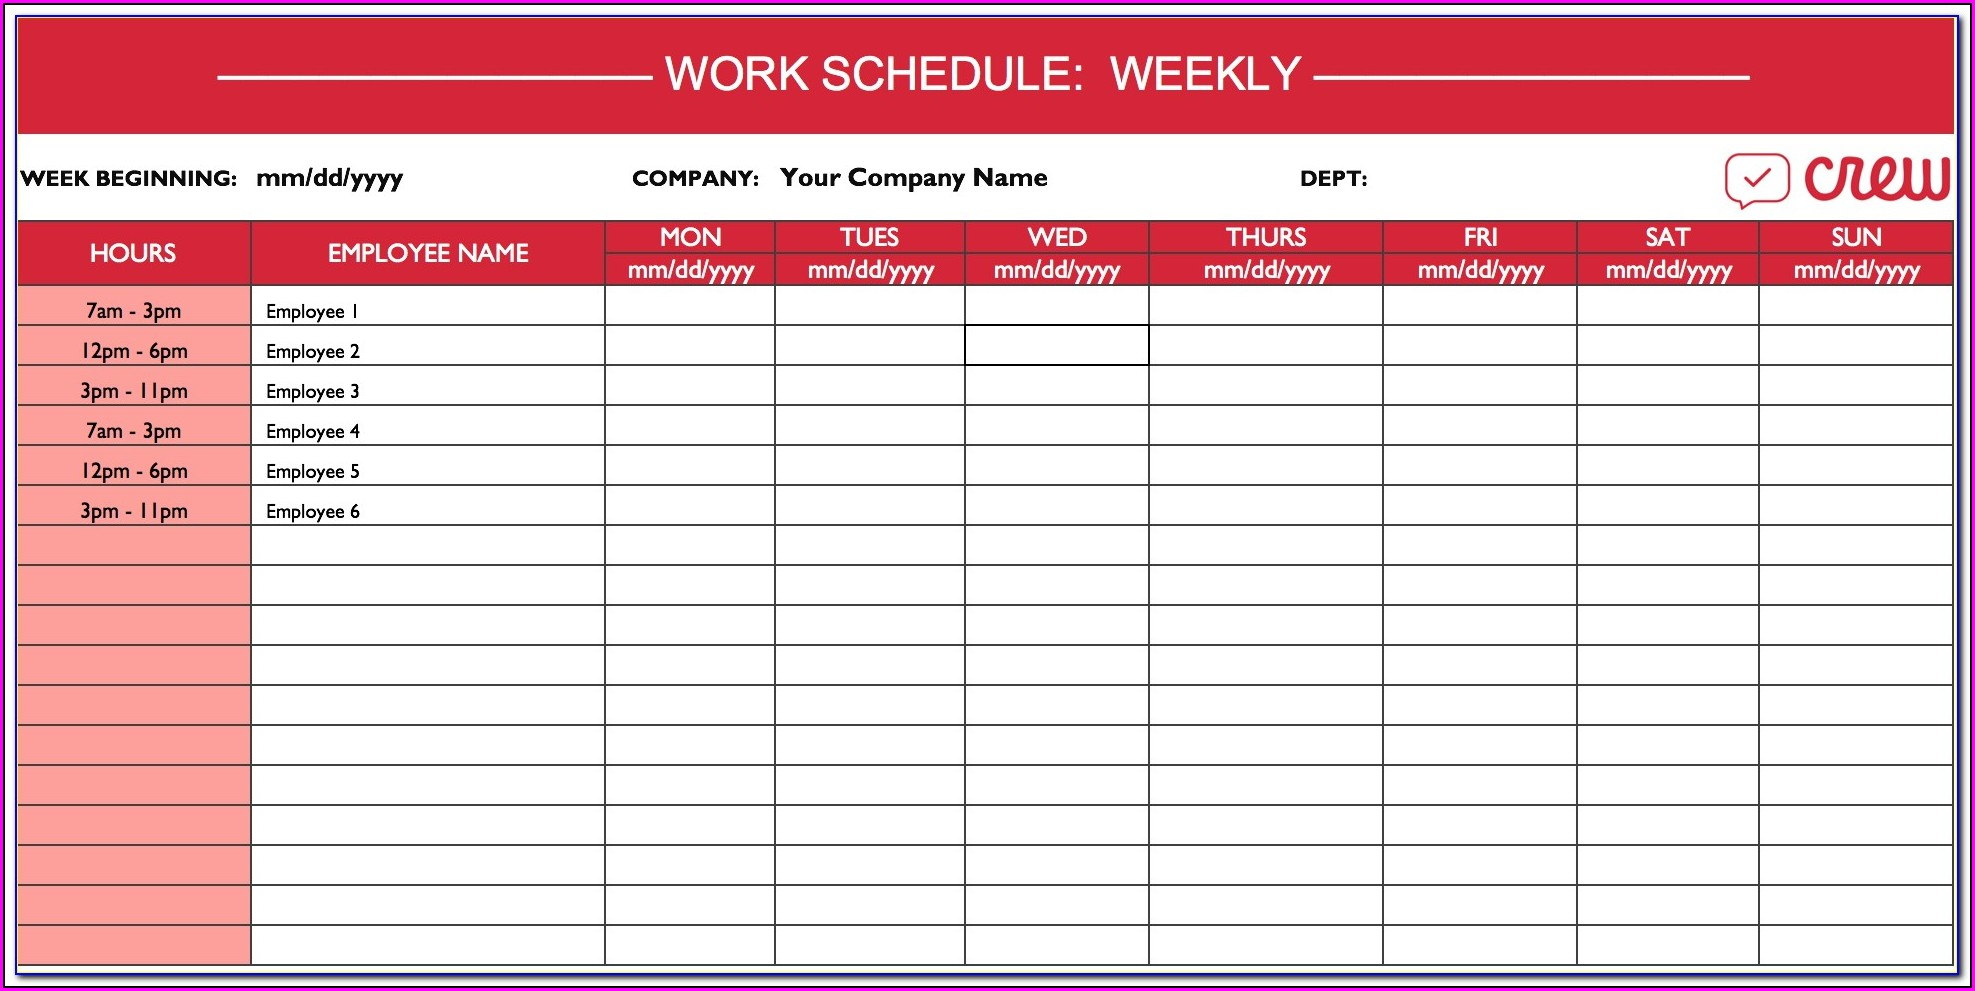 Weekly Employee Work Schedule Template Excel